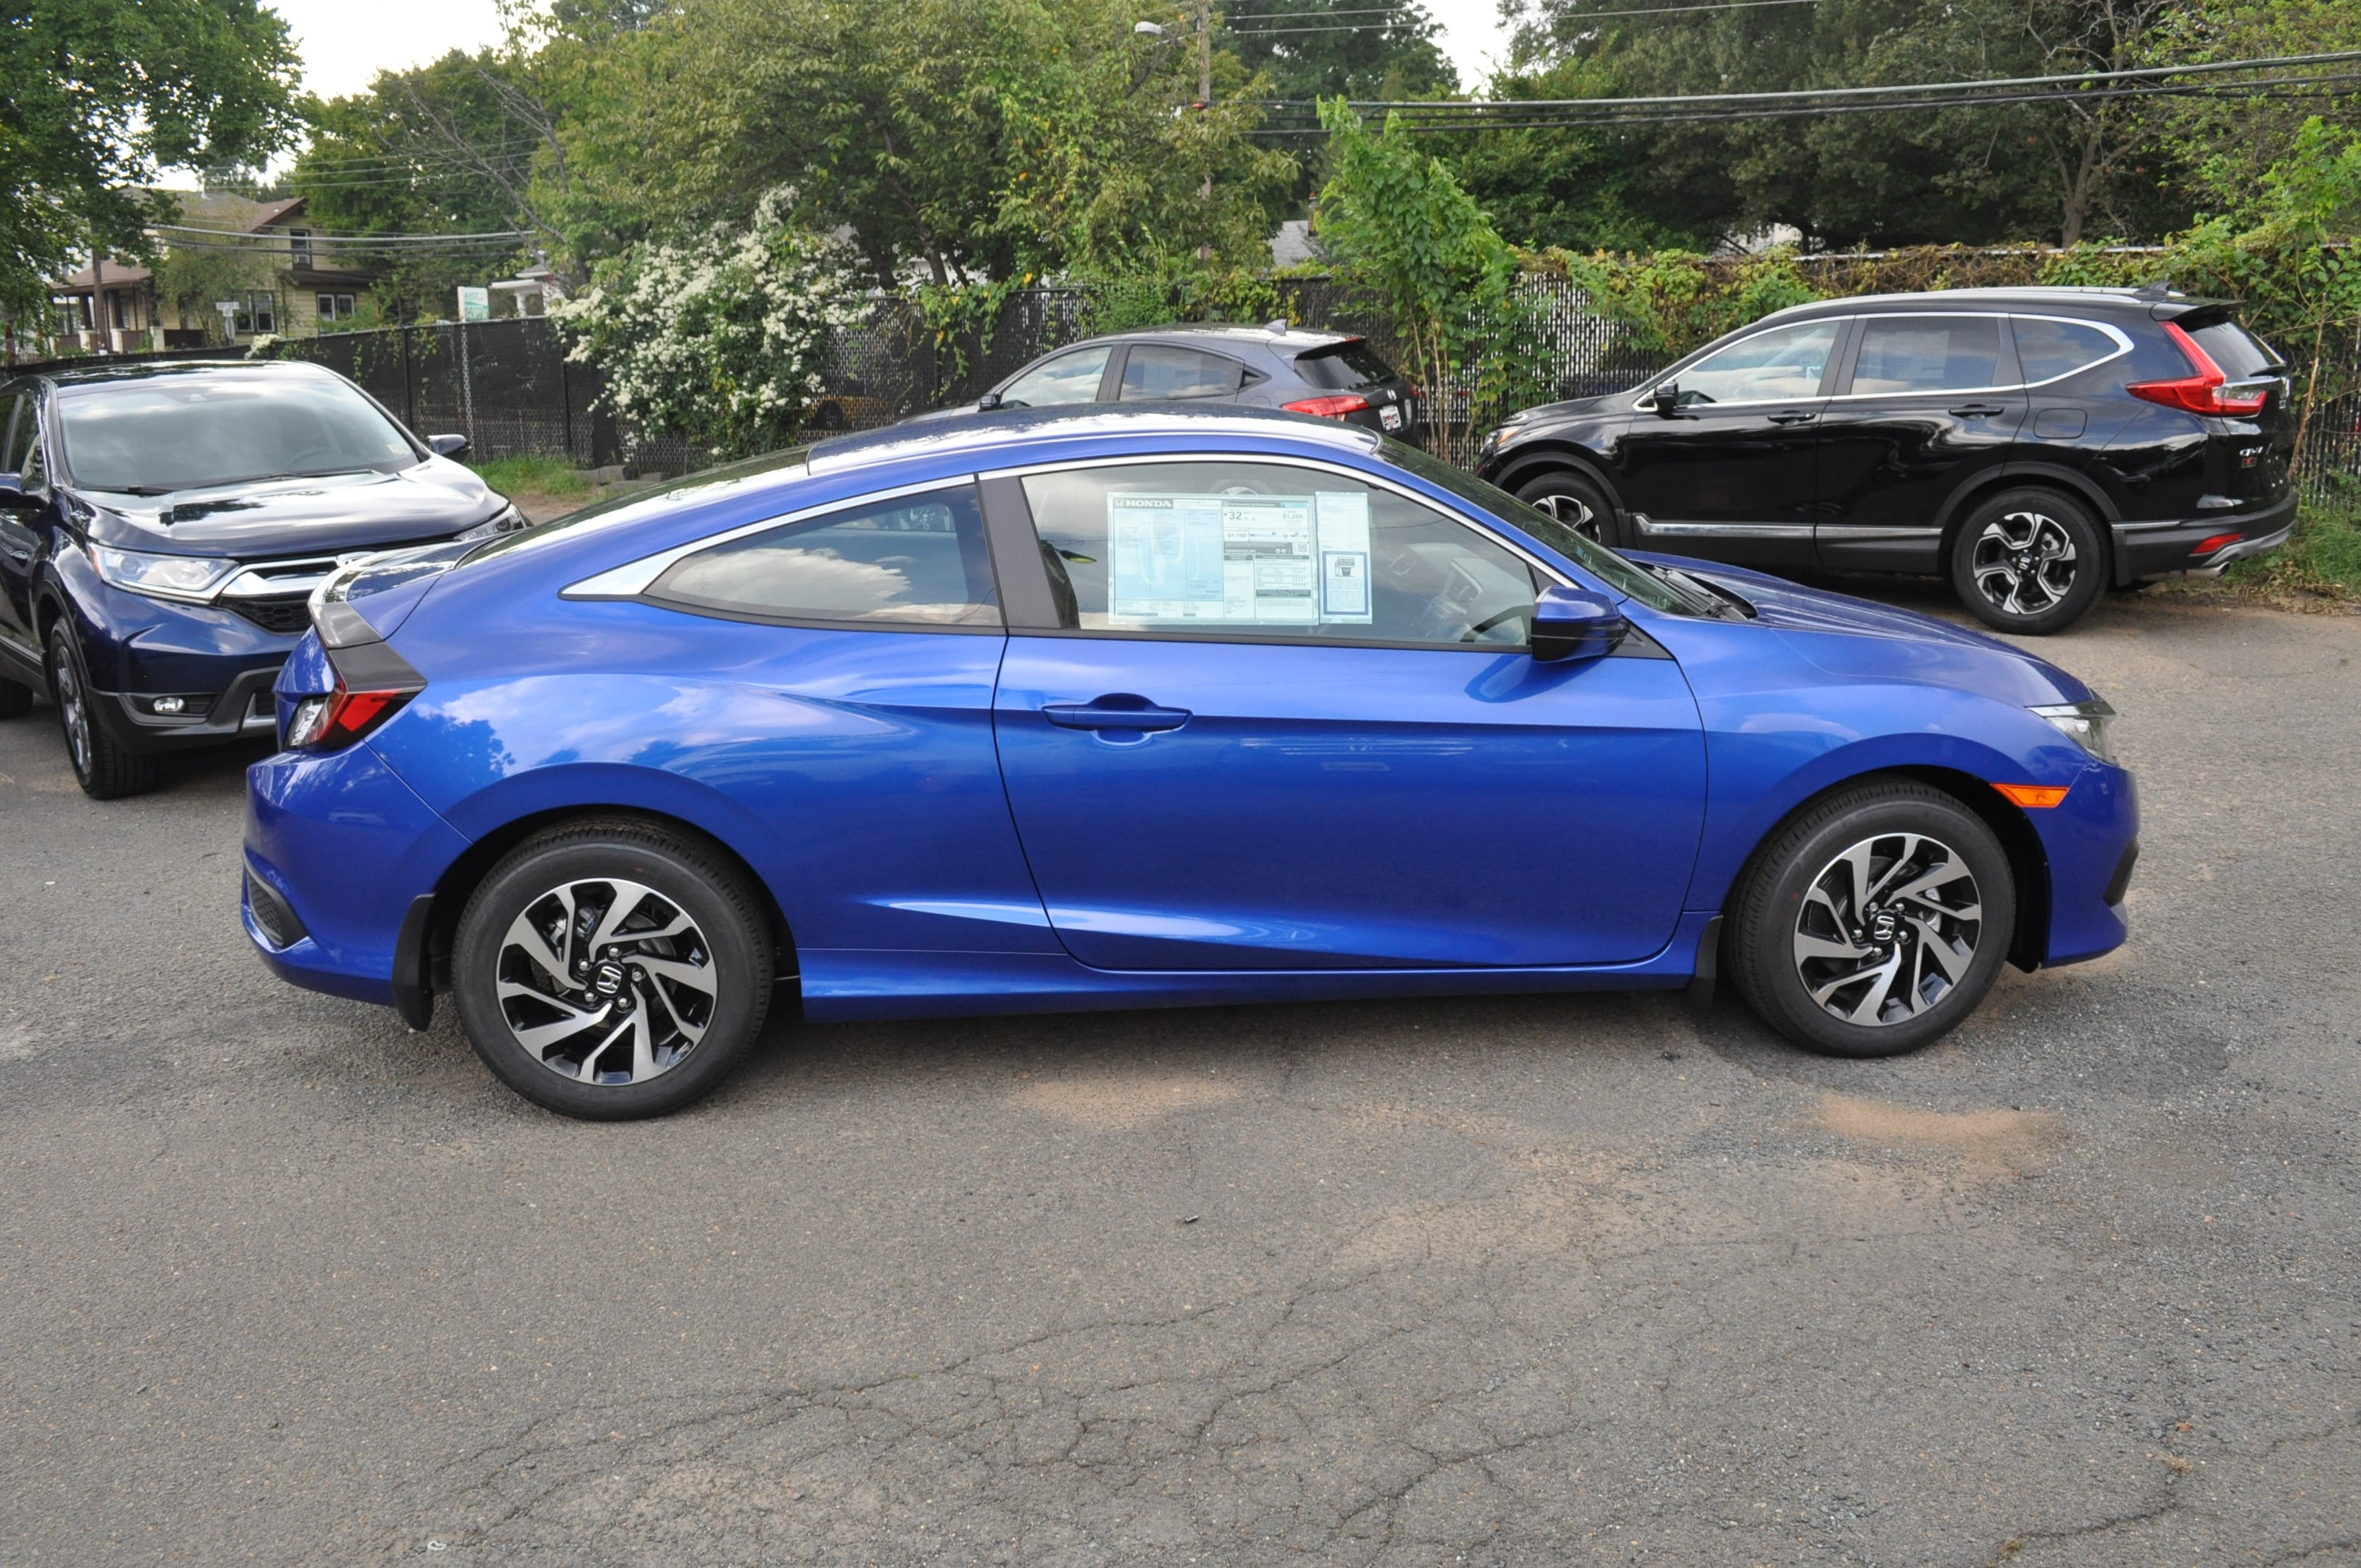 New U003e 2018 U003e Honda Civic U003e 2018 Honda Civic